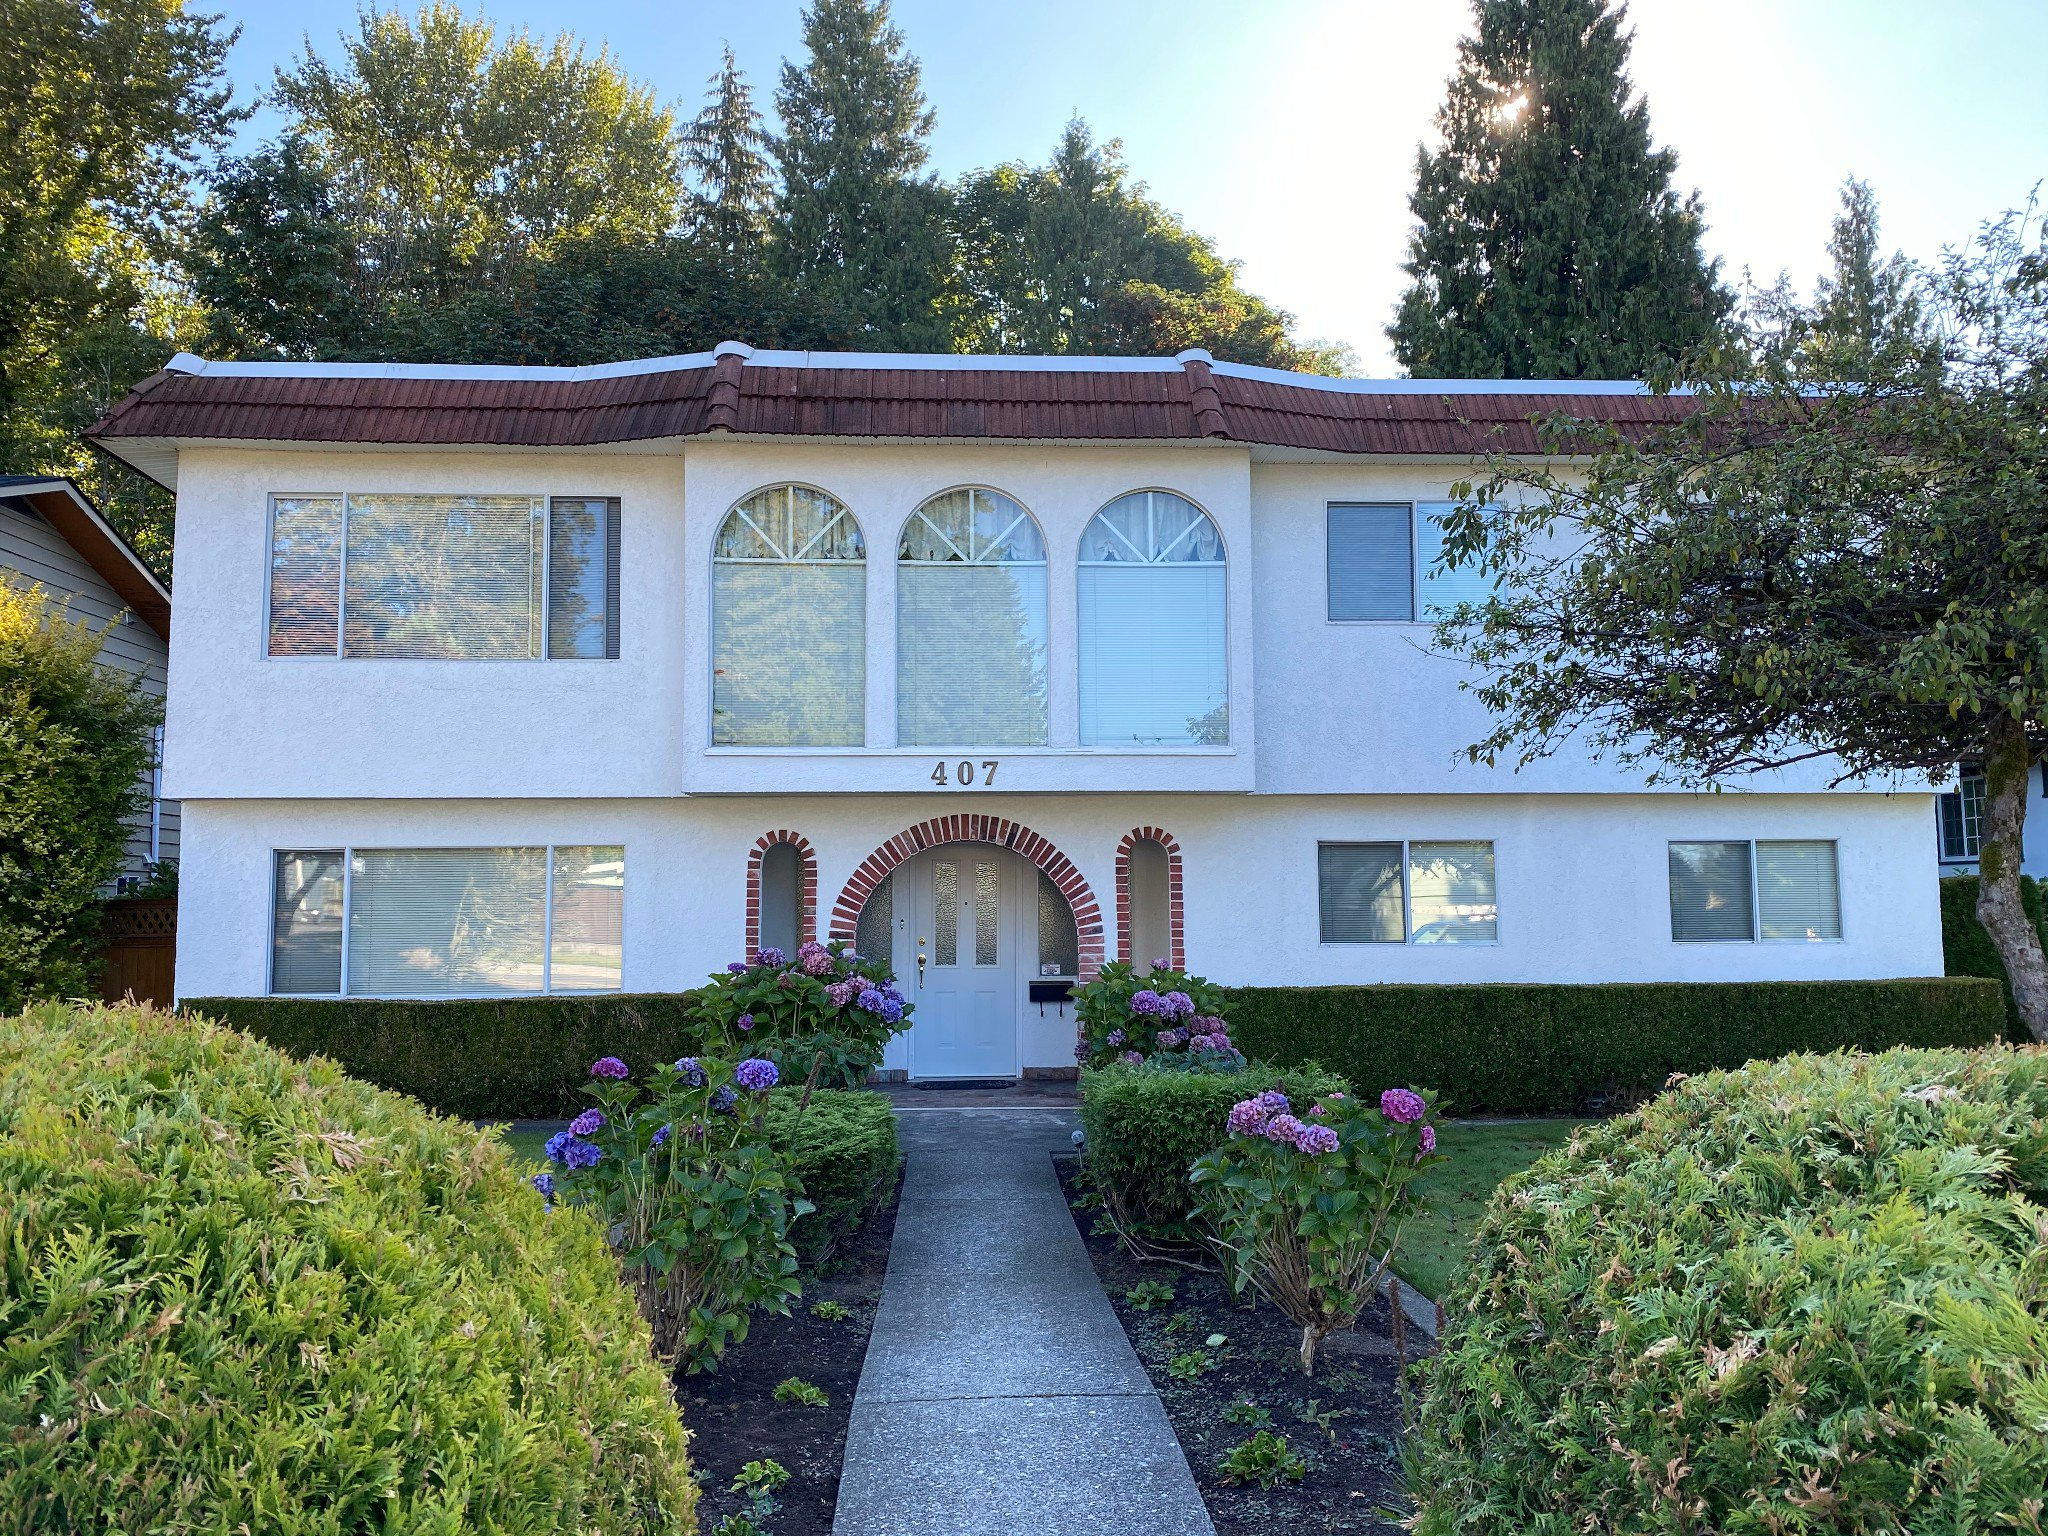 Main Photo: 407 Laurentian Crescent in Coquitlam: Central Coquitlam House for sale : MLS®# R2482289